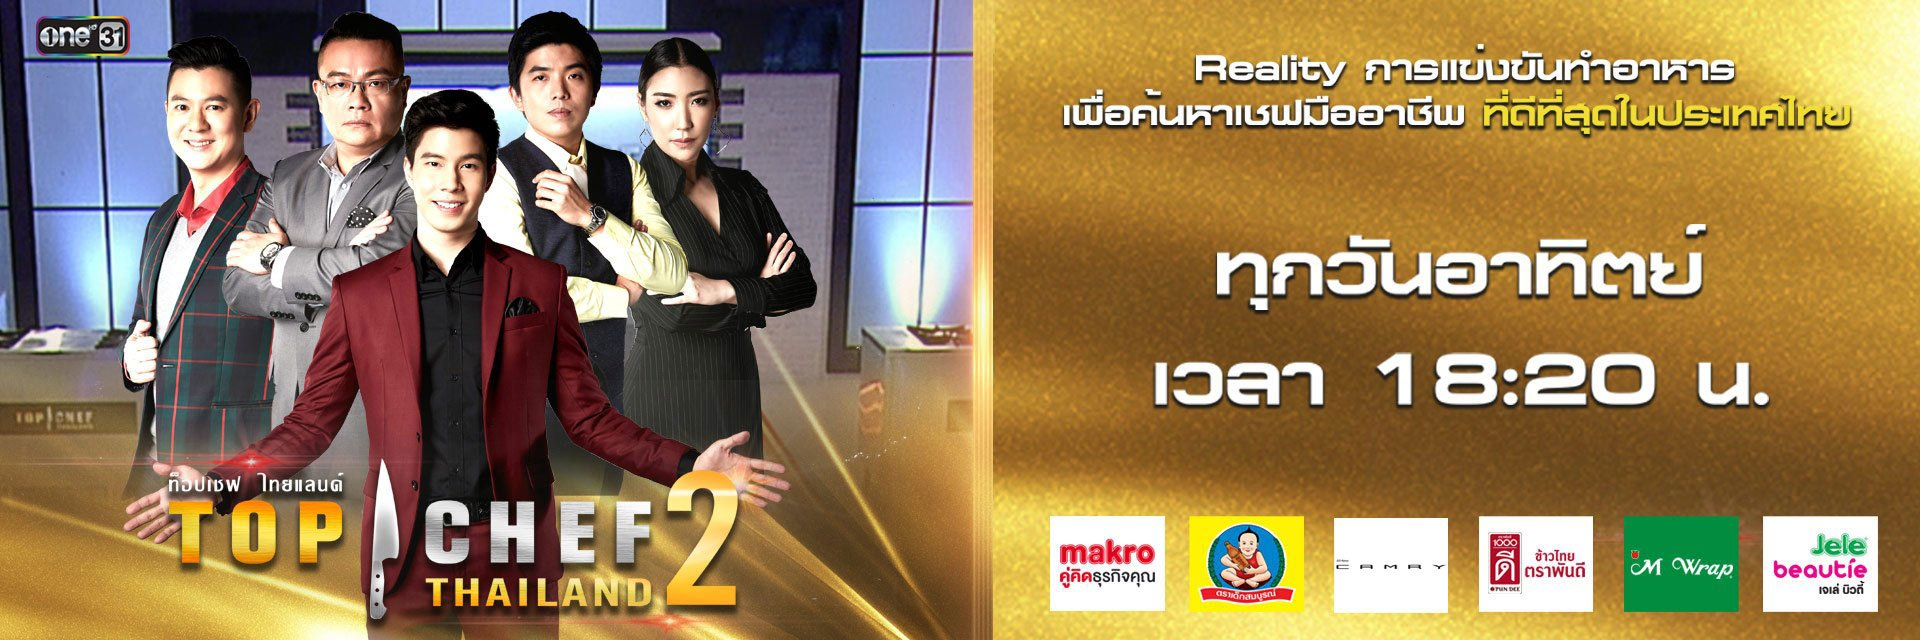 รายการ Top Chef Thailand Season 2